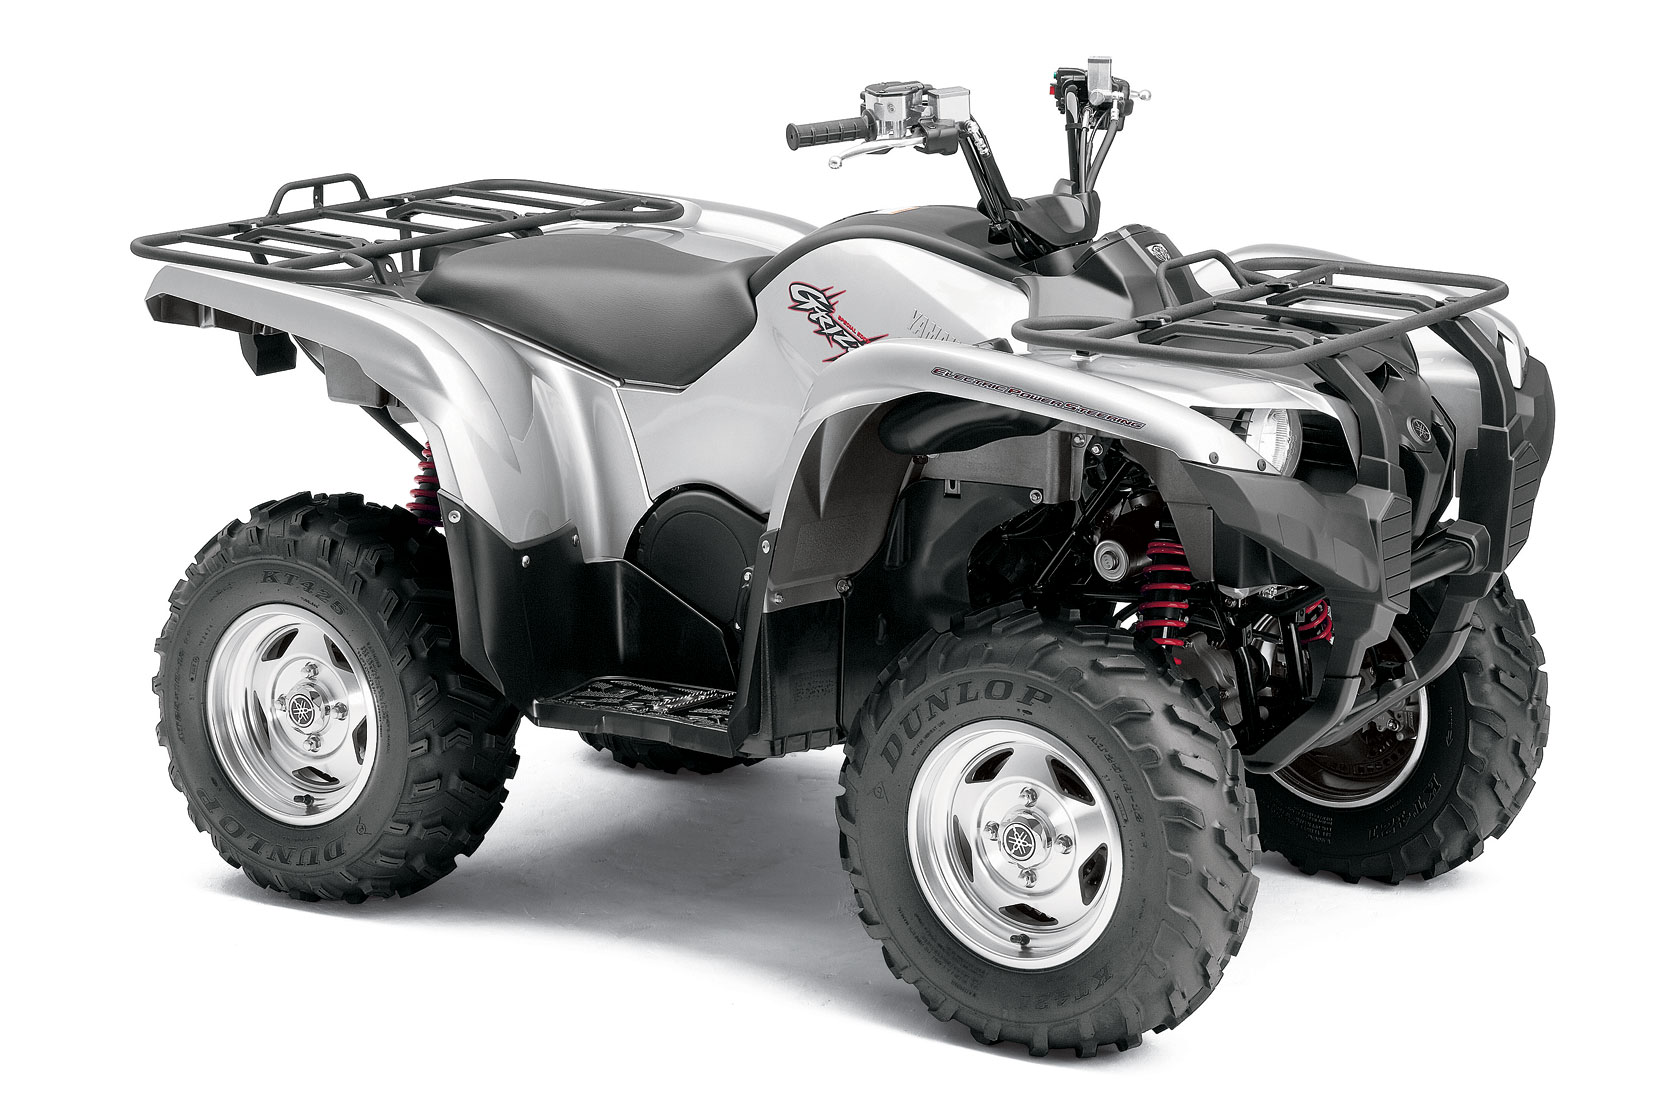 yamaha grizzly 700 fi 4x4 eps special edition specs 2010. Black Bedroom Furniture Sets. Home Design Ideas